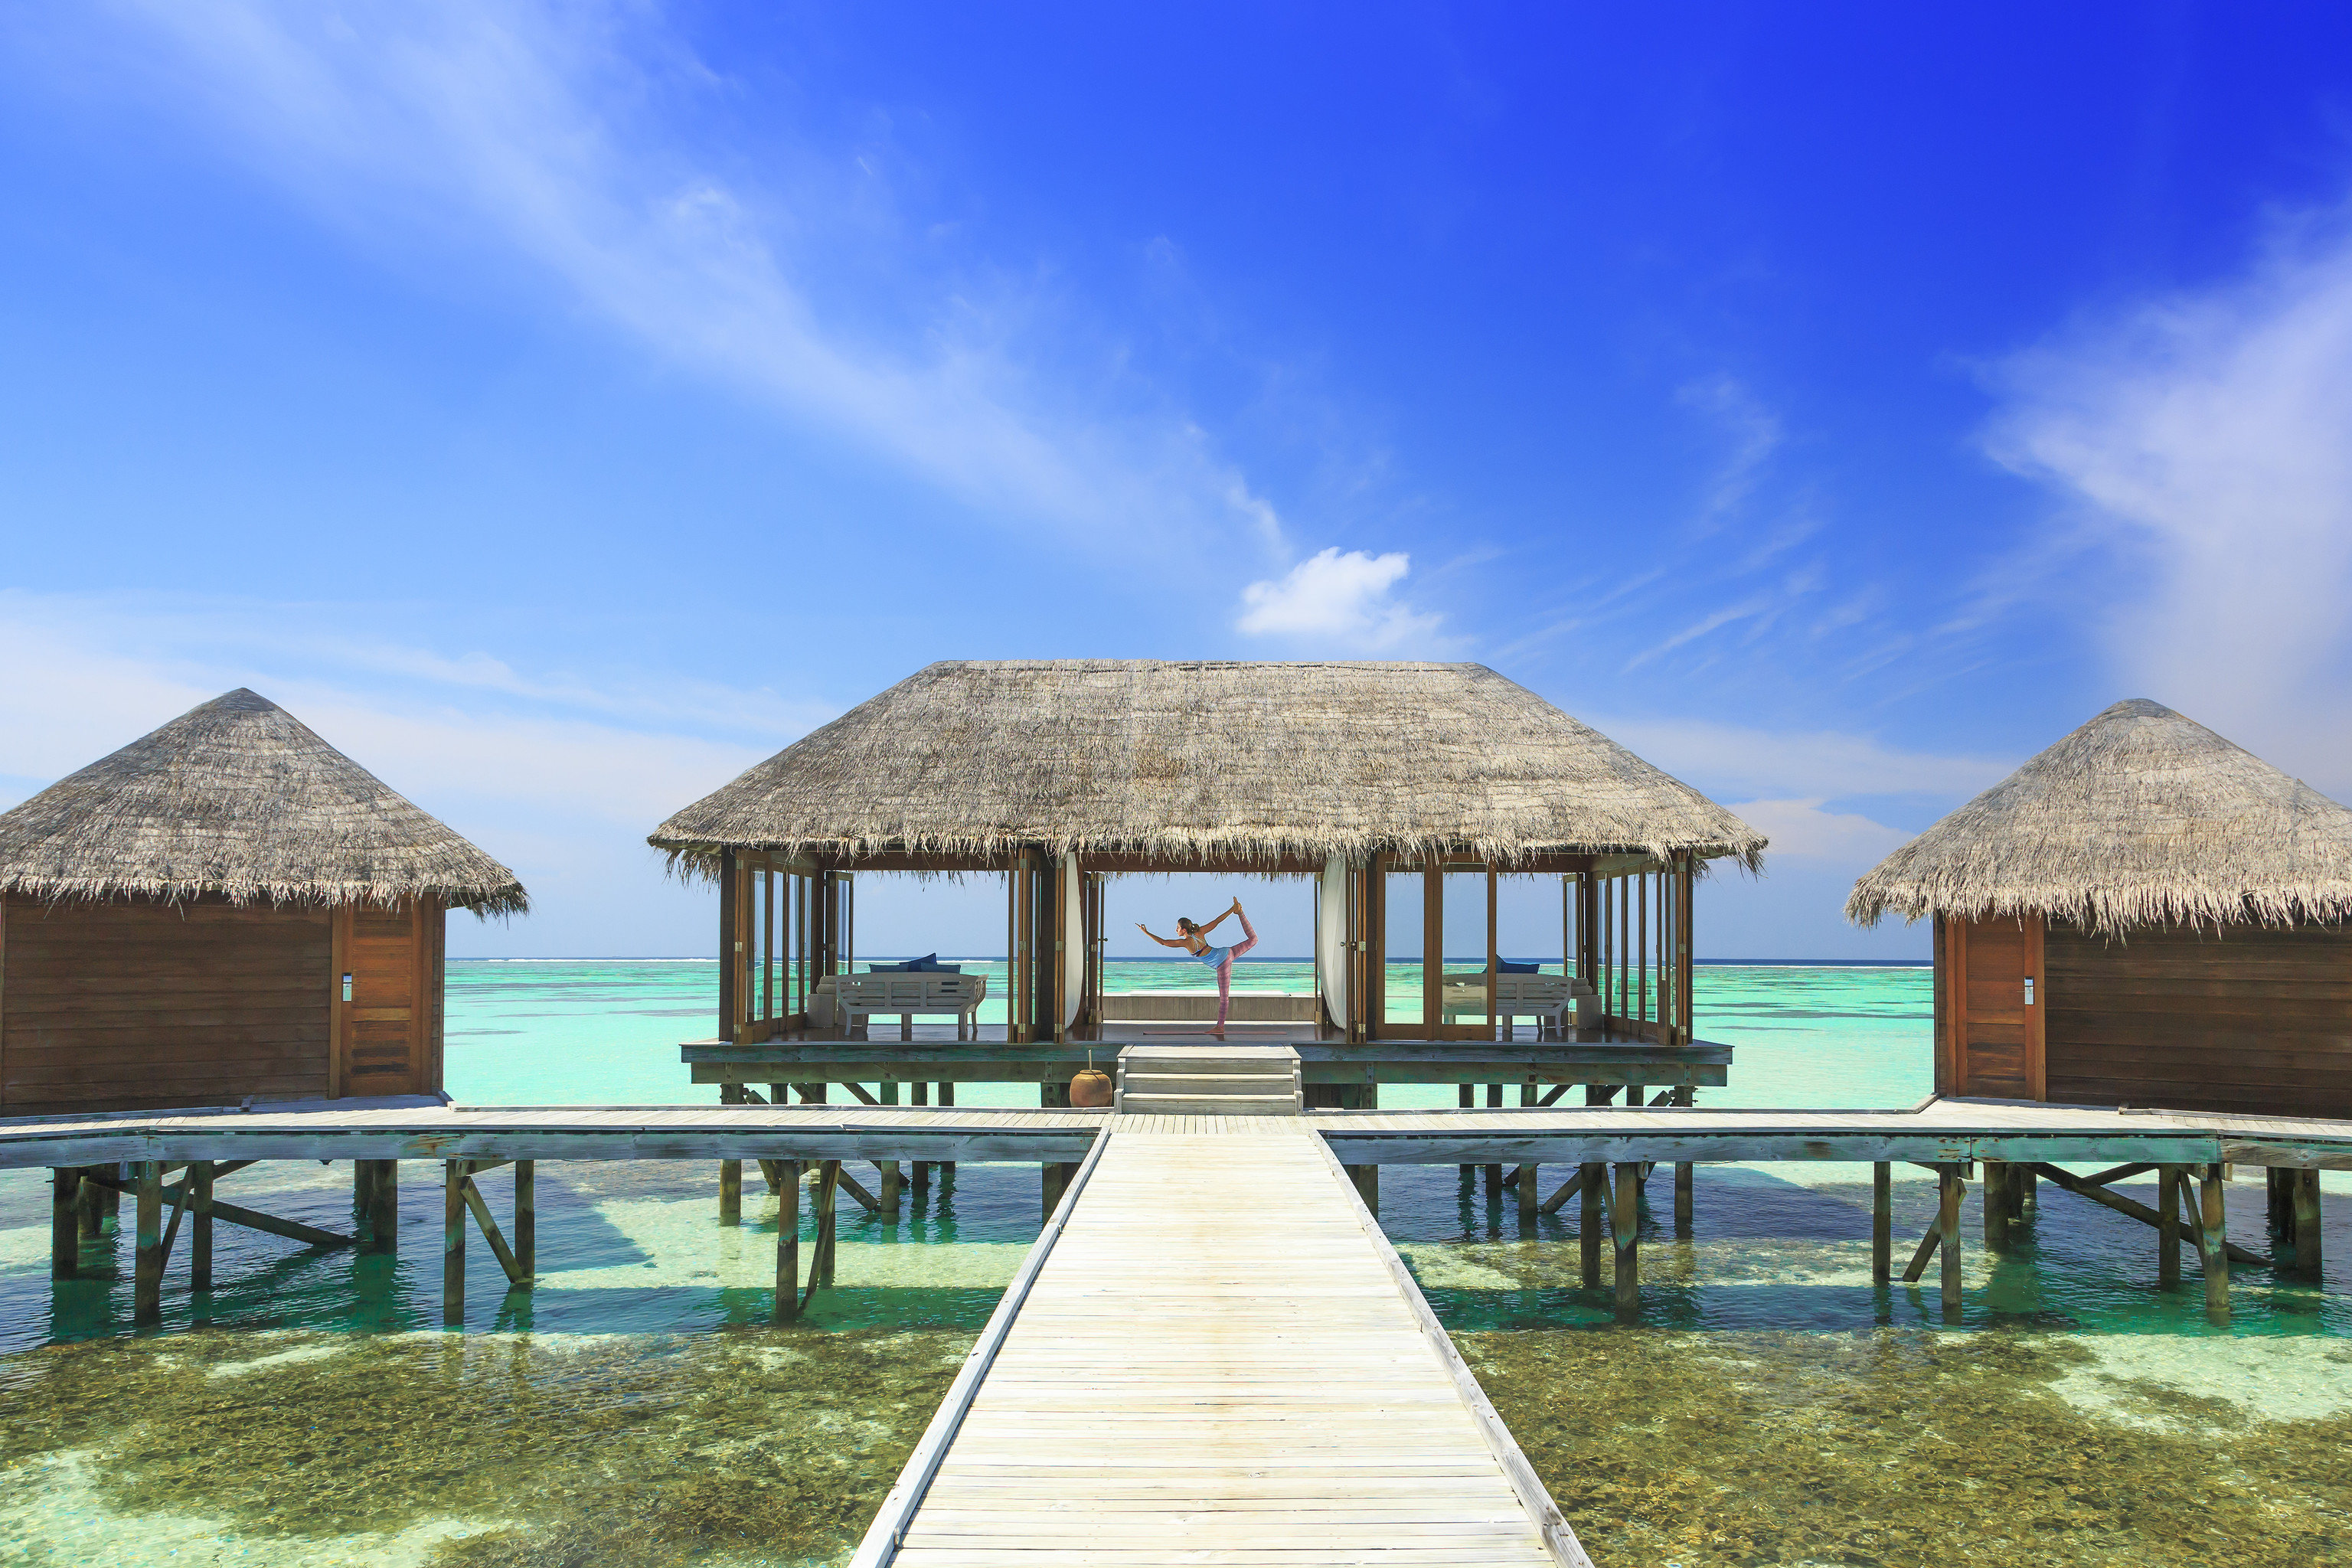 Hotels Trip Ideas outdoor sky ground wooden building house property Beach vacation Resort estate Sea Ocean hut Villa swimming pool cottage bay caribbean Island Lagoon wood shore